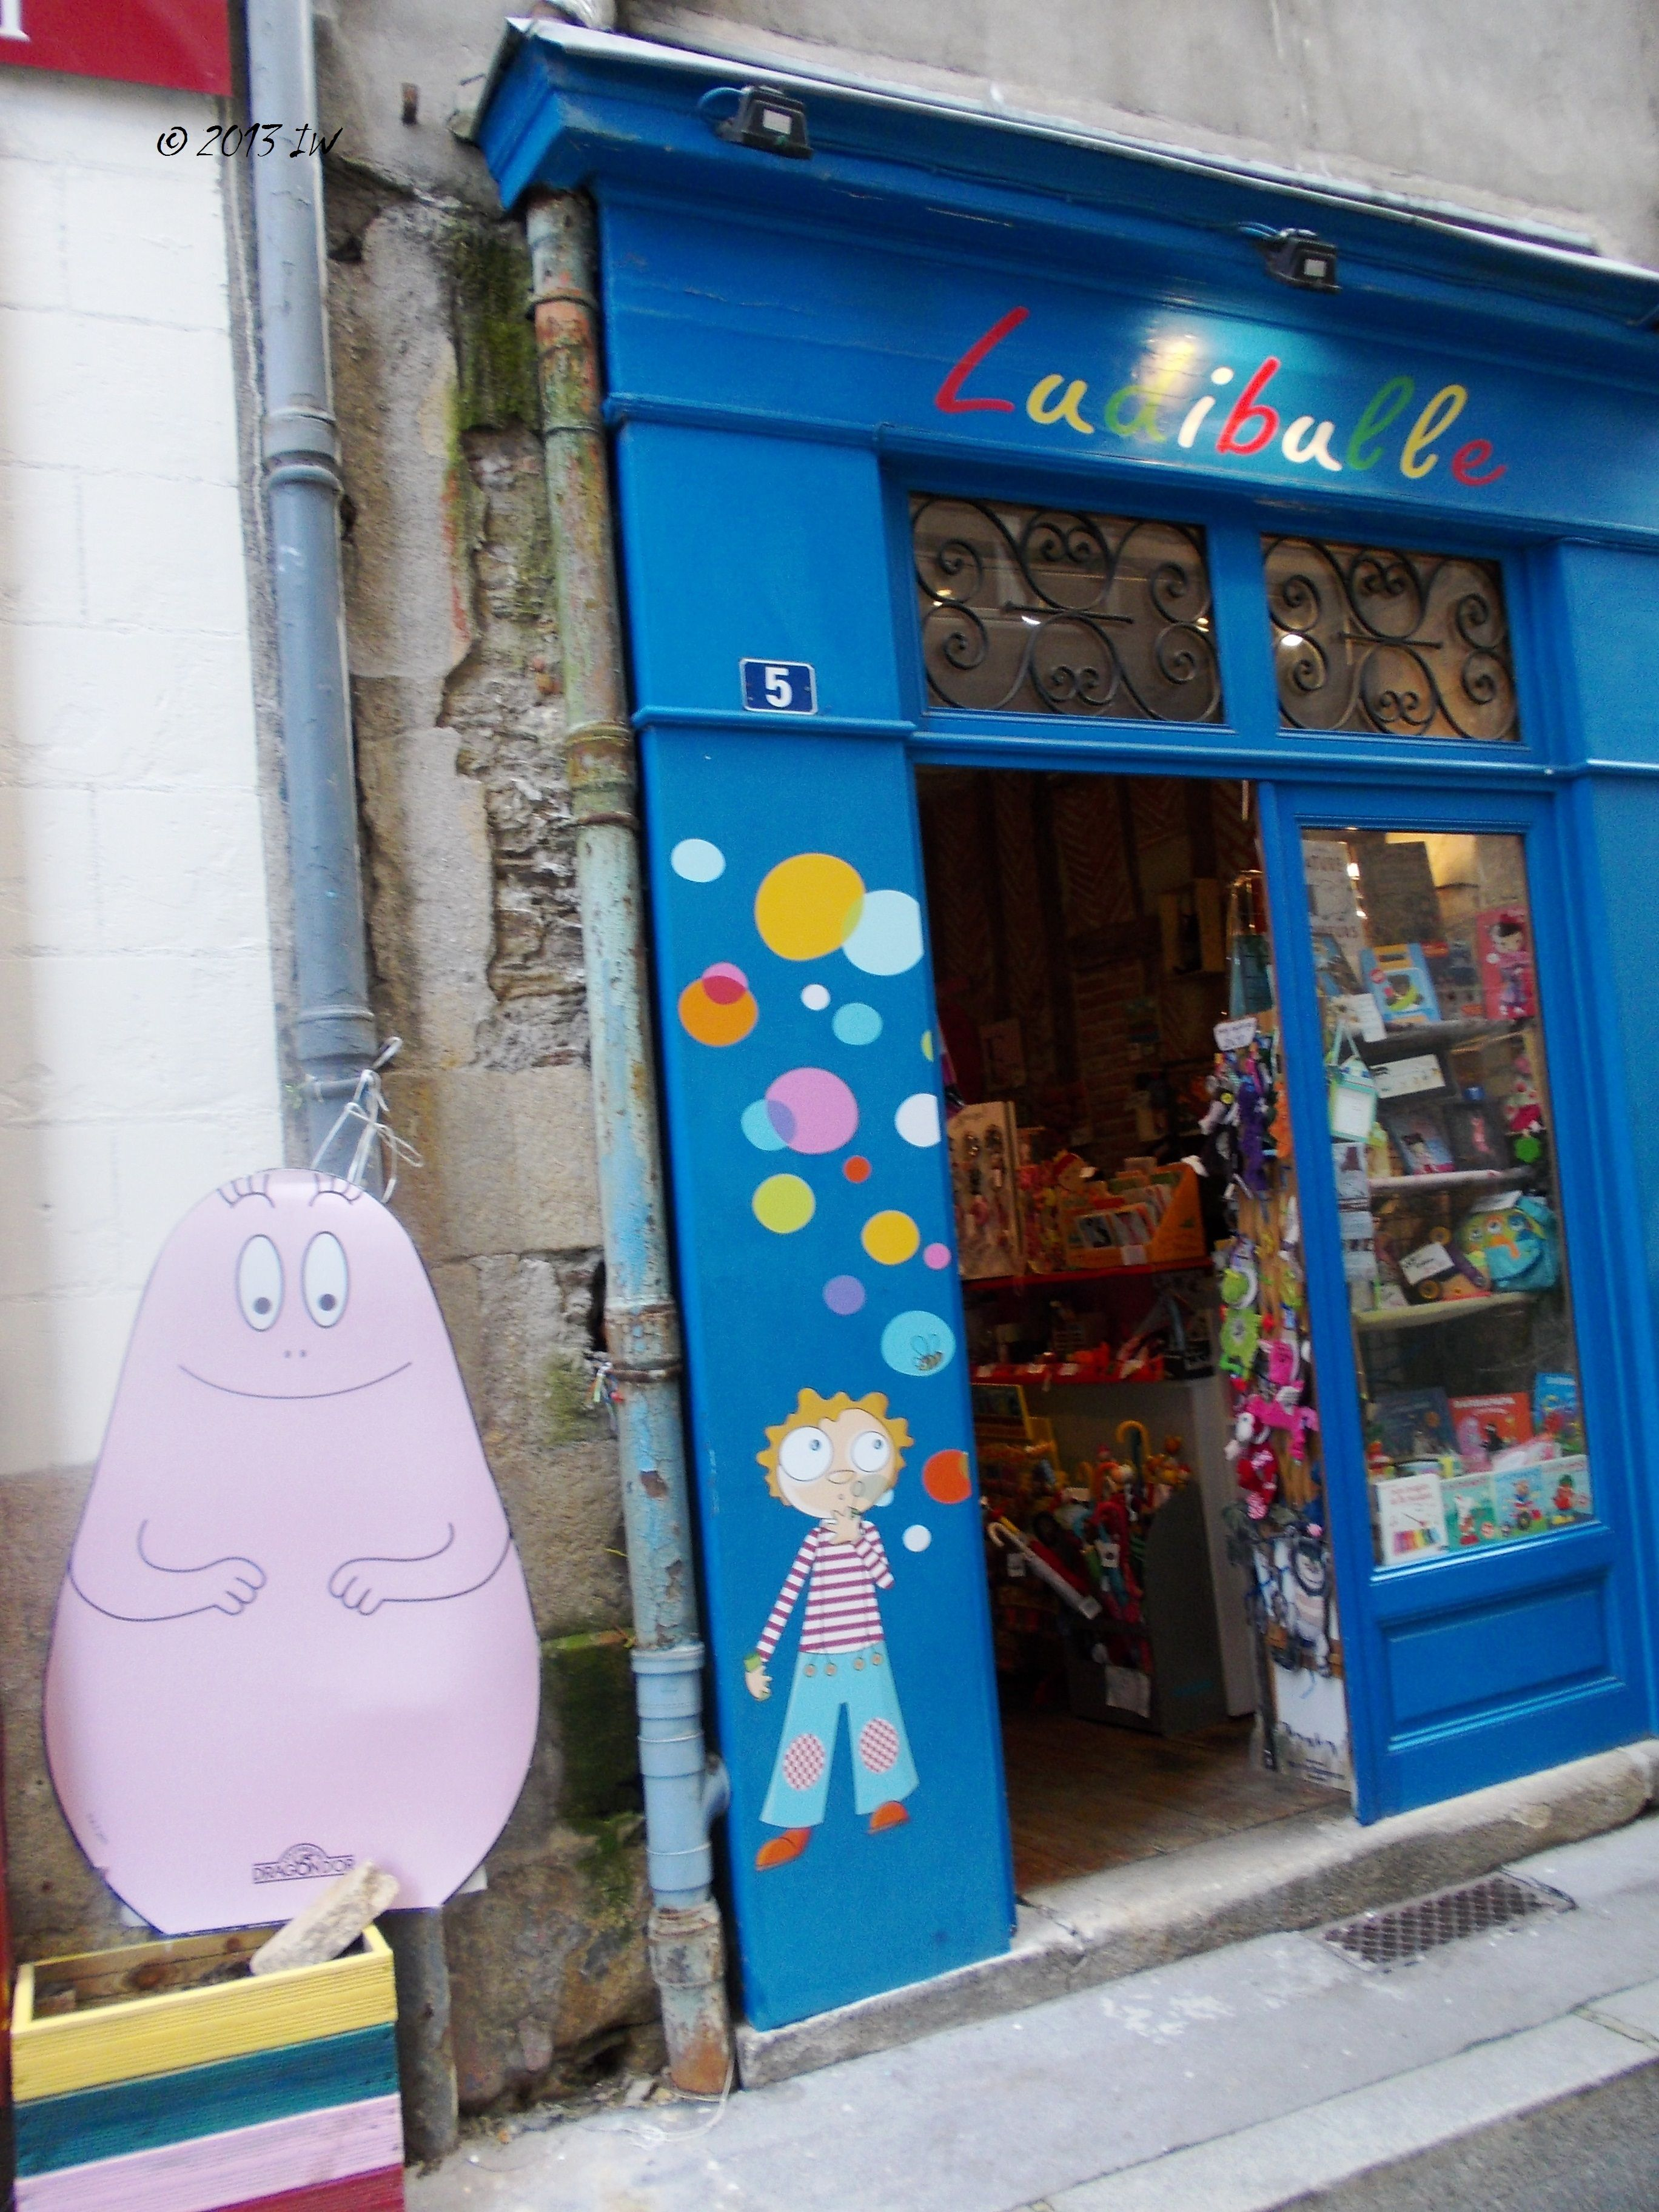 Besides the good food and many fashion outlet shops, one can find many handmade toys shops, where especially those travelling with children will find a lot of nice presents for the little ones.